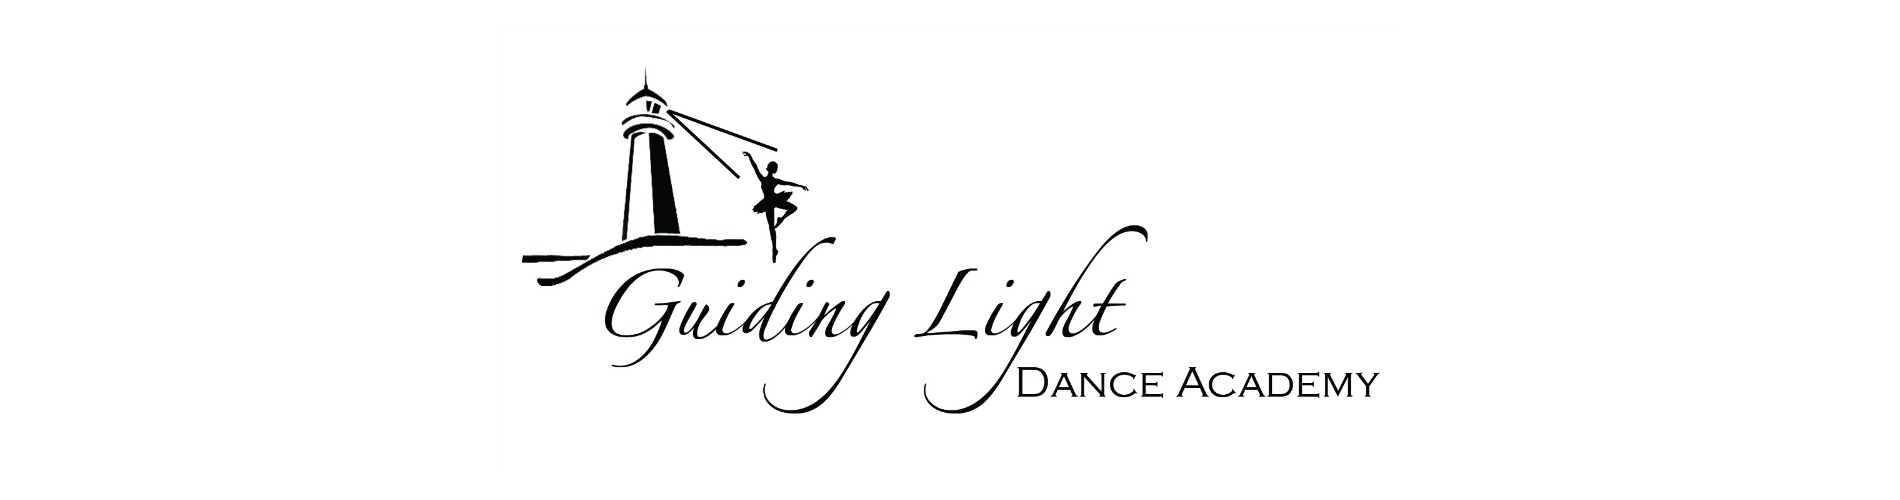 Guiding Light Dance Academy